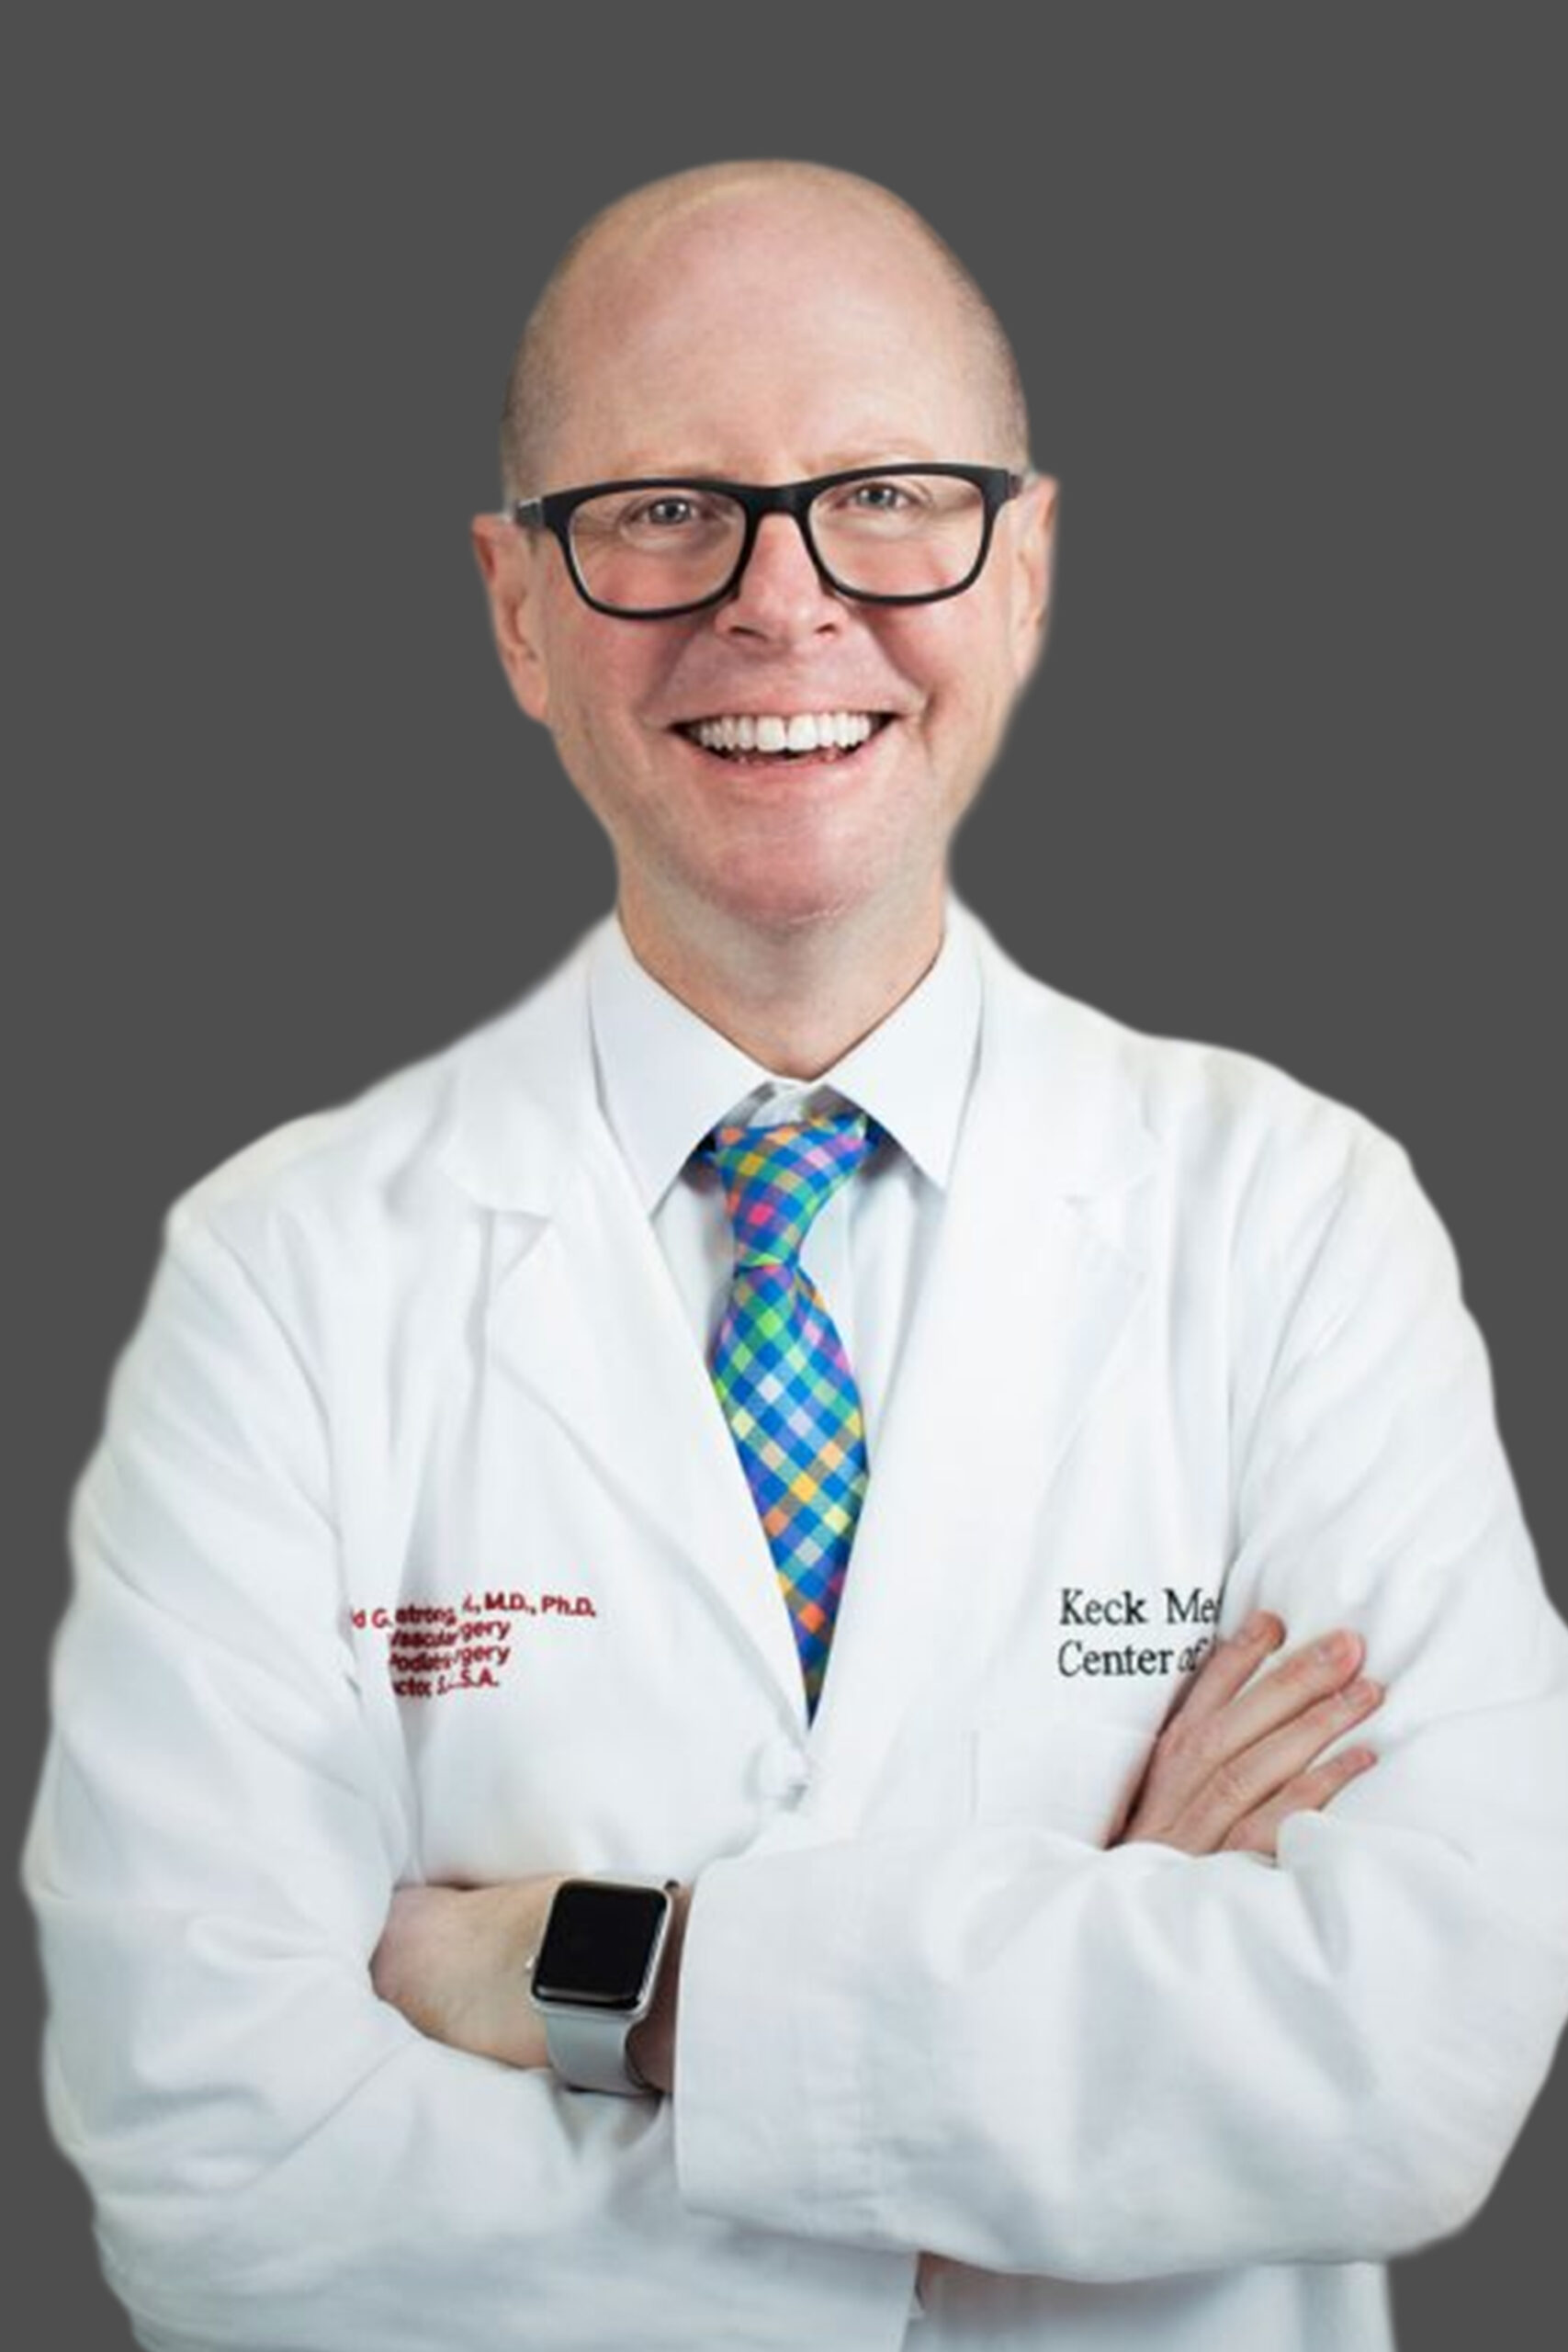 David G. Armstrong, DPM, MD, PhD